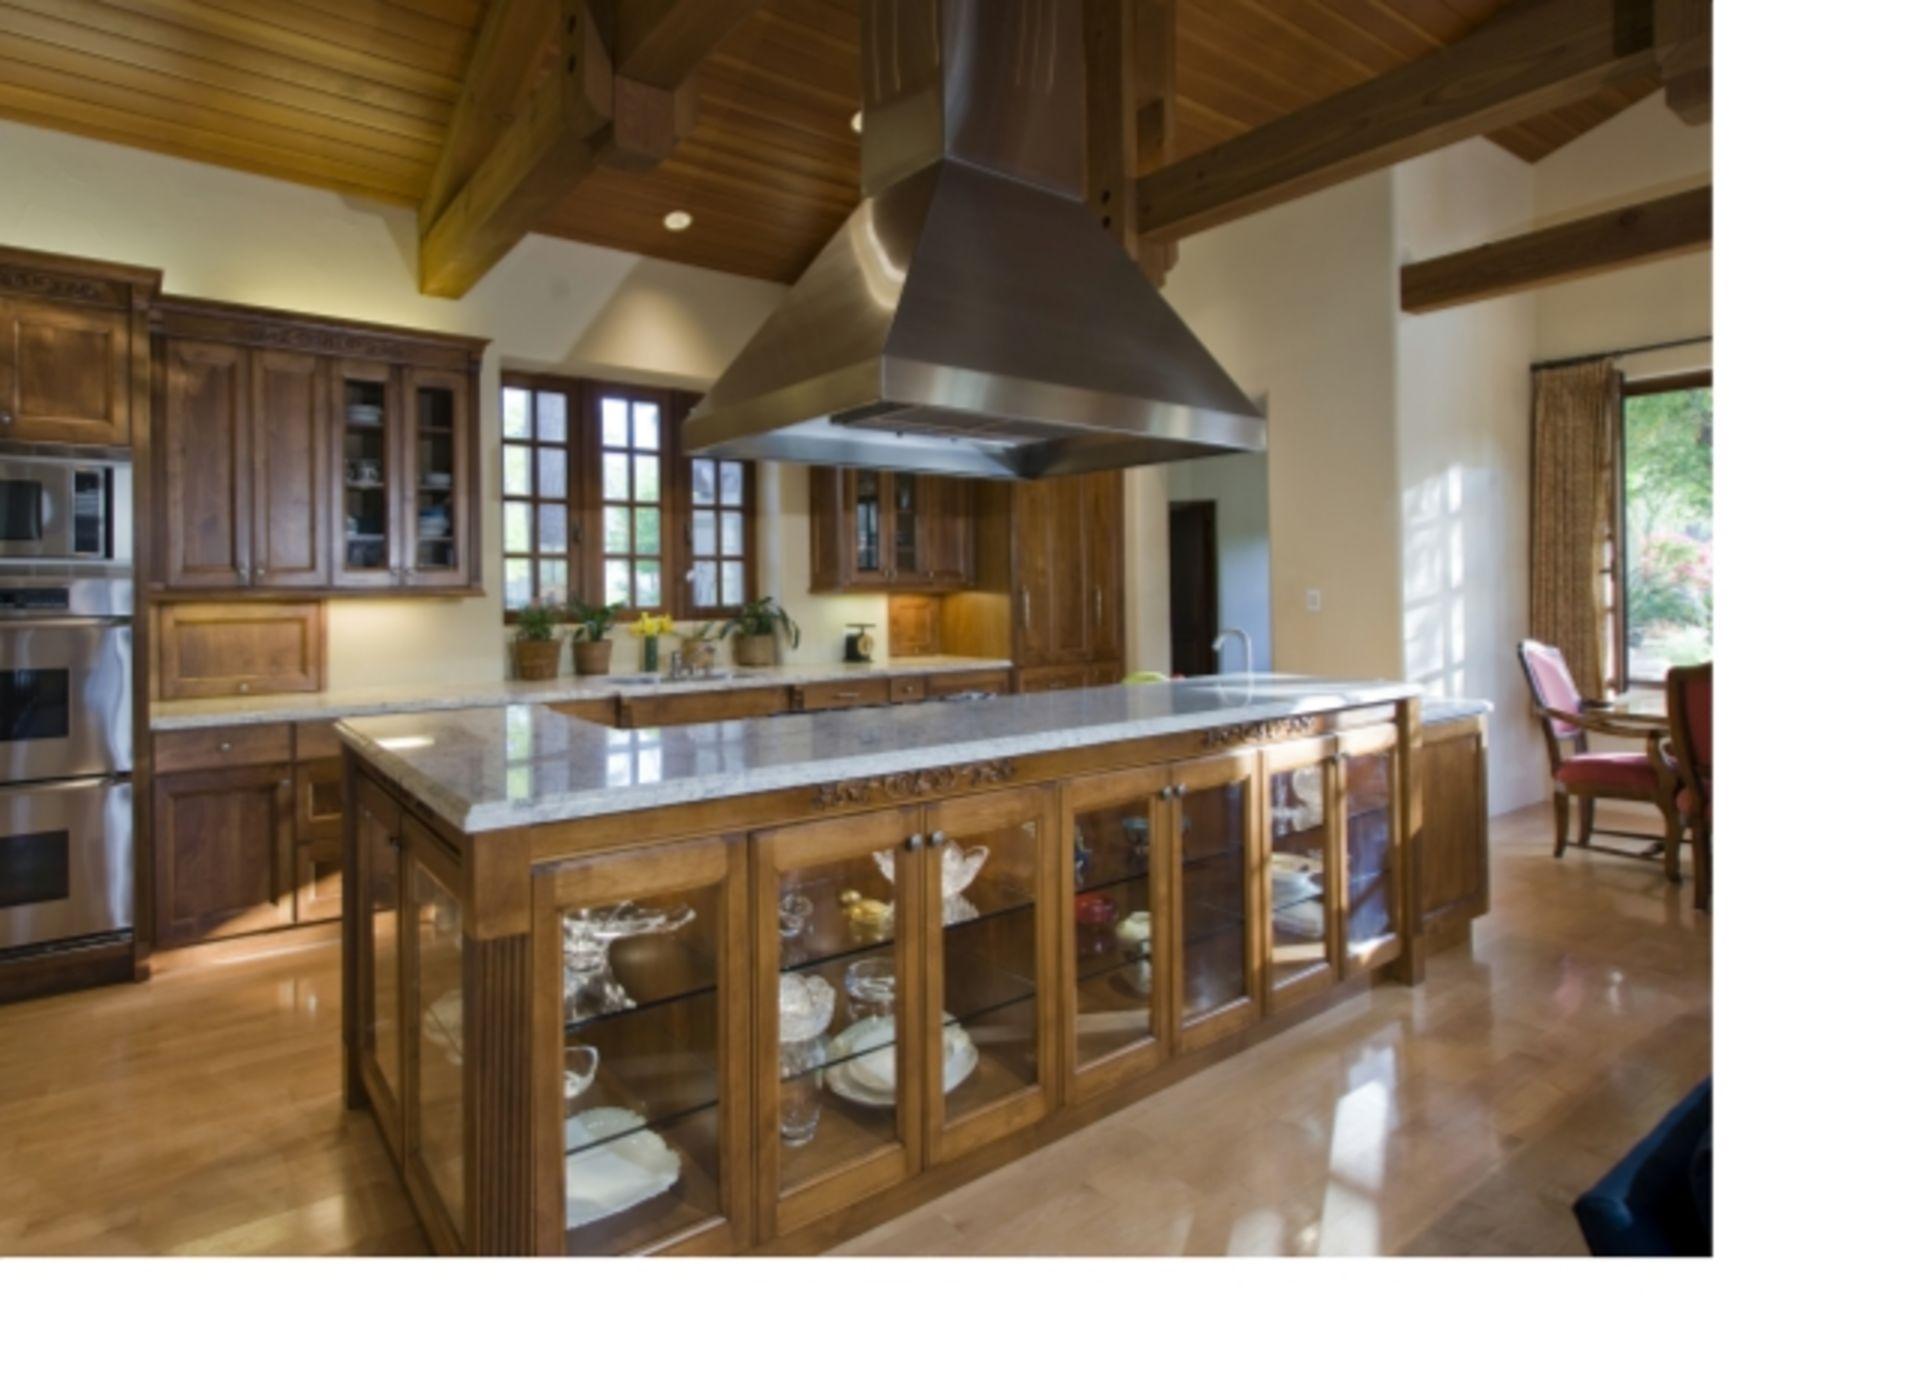 Buyers Tips for Homes in East Cobb 3 Things to Look at When Viewing a House